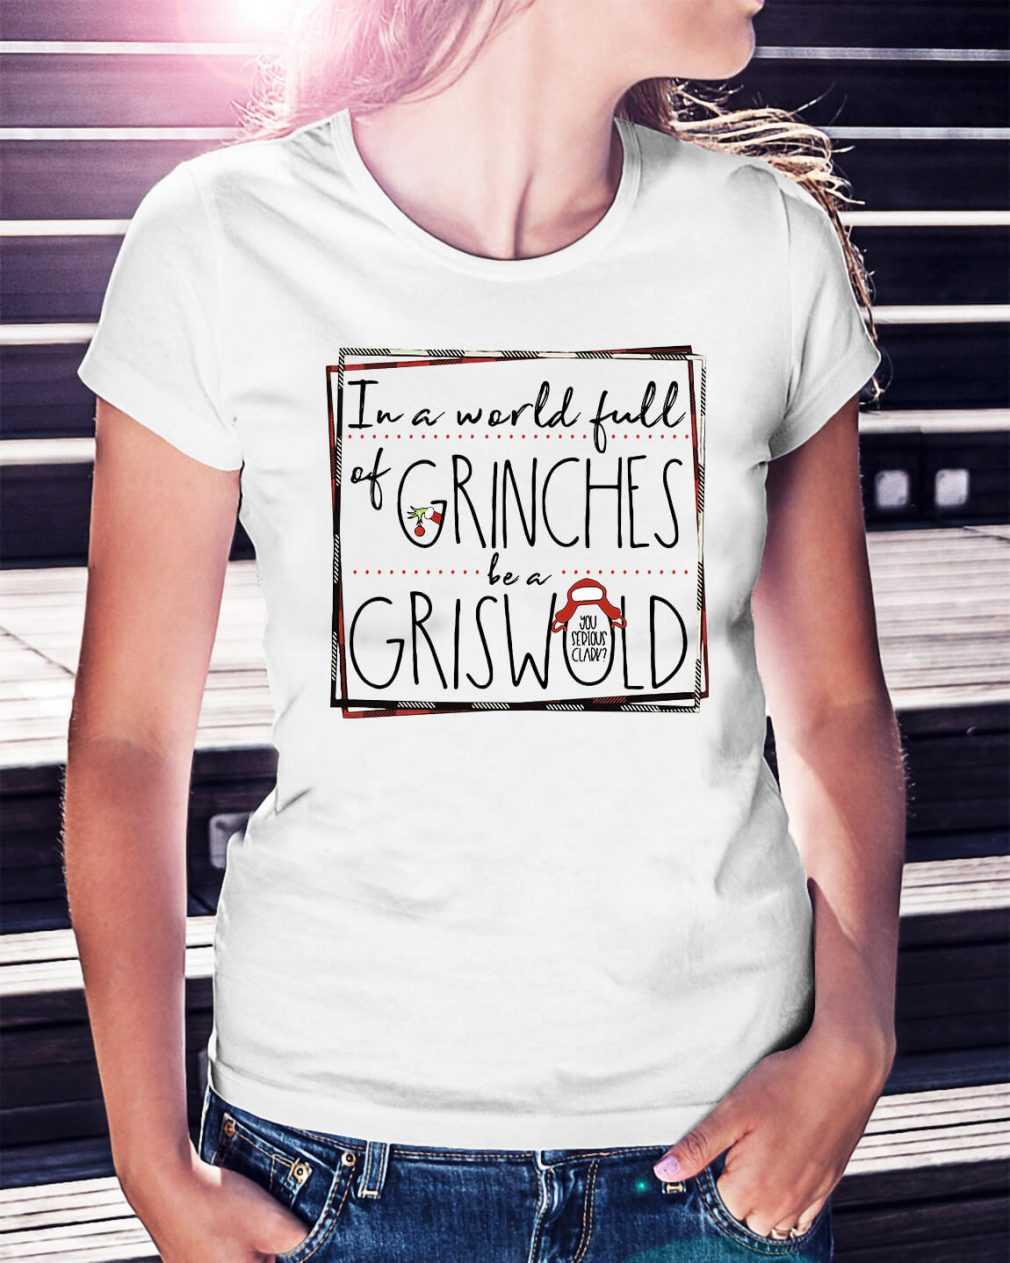 Grinch in a world full of Grinches be a Griswold Christmas Ladies Tee